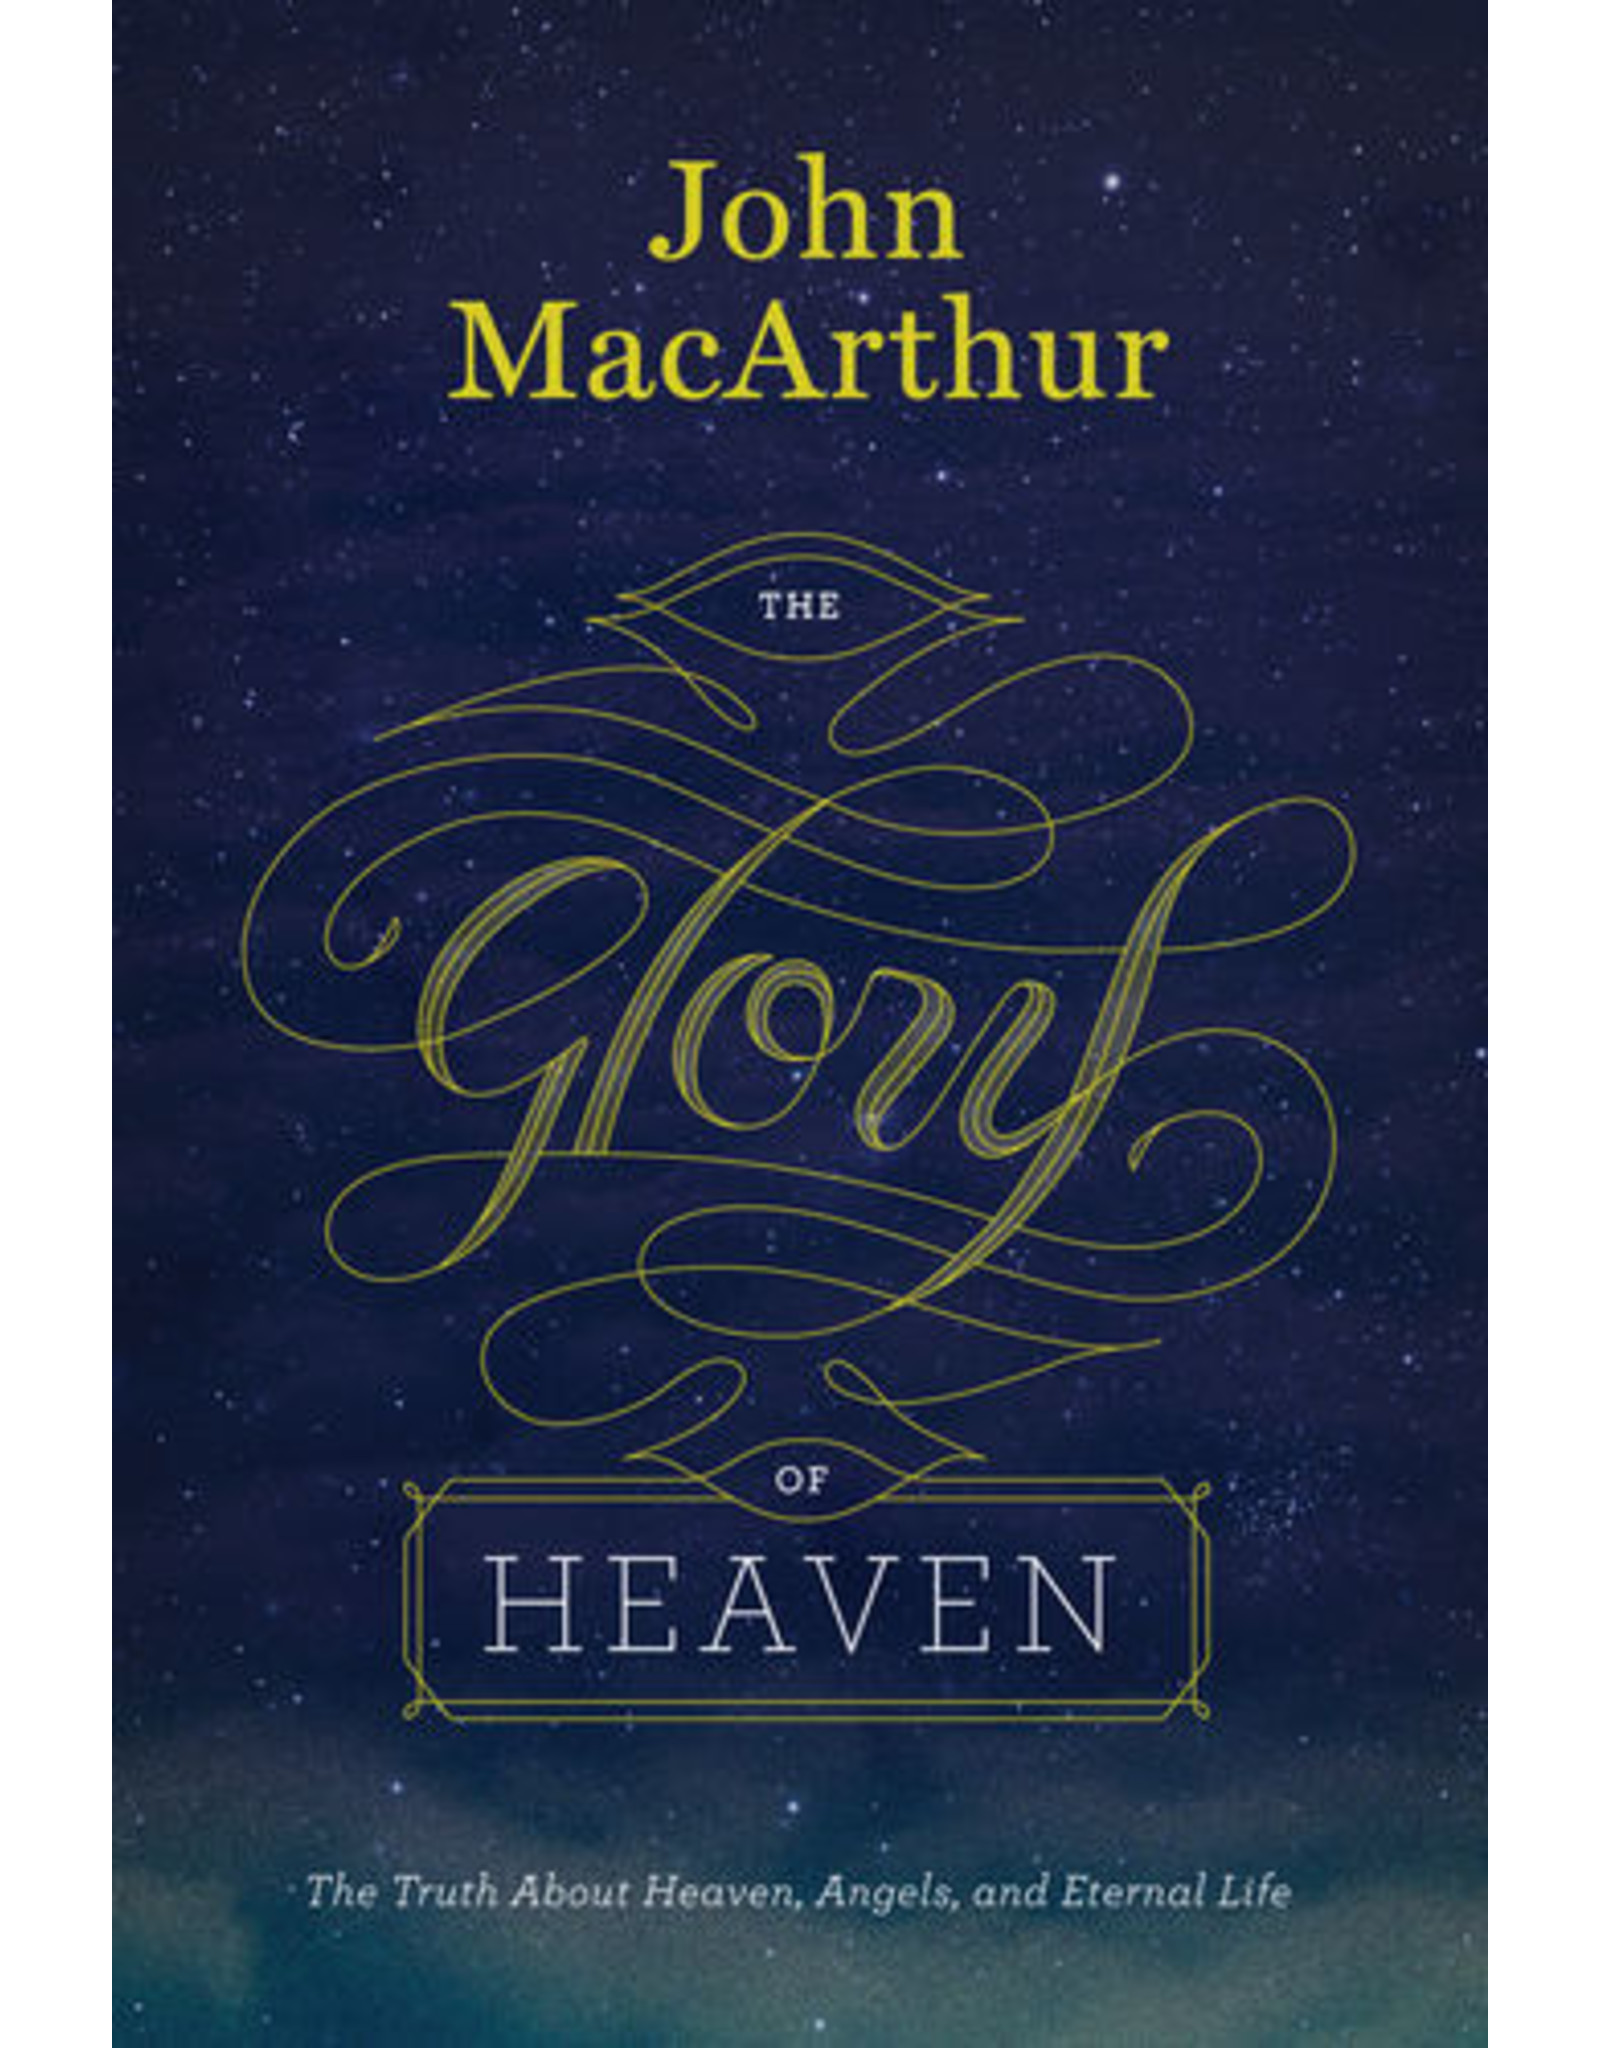 MacArthur The Glory of Heaven: The Truth about Heaven, Angels, and Eternal Life